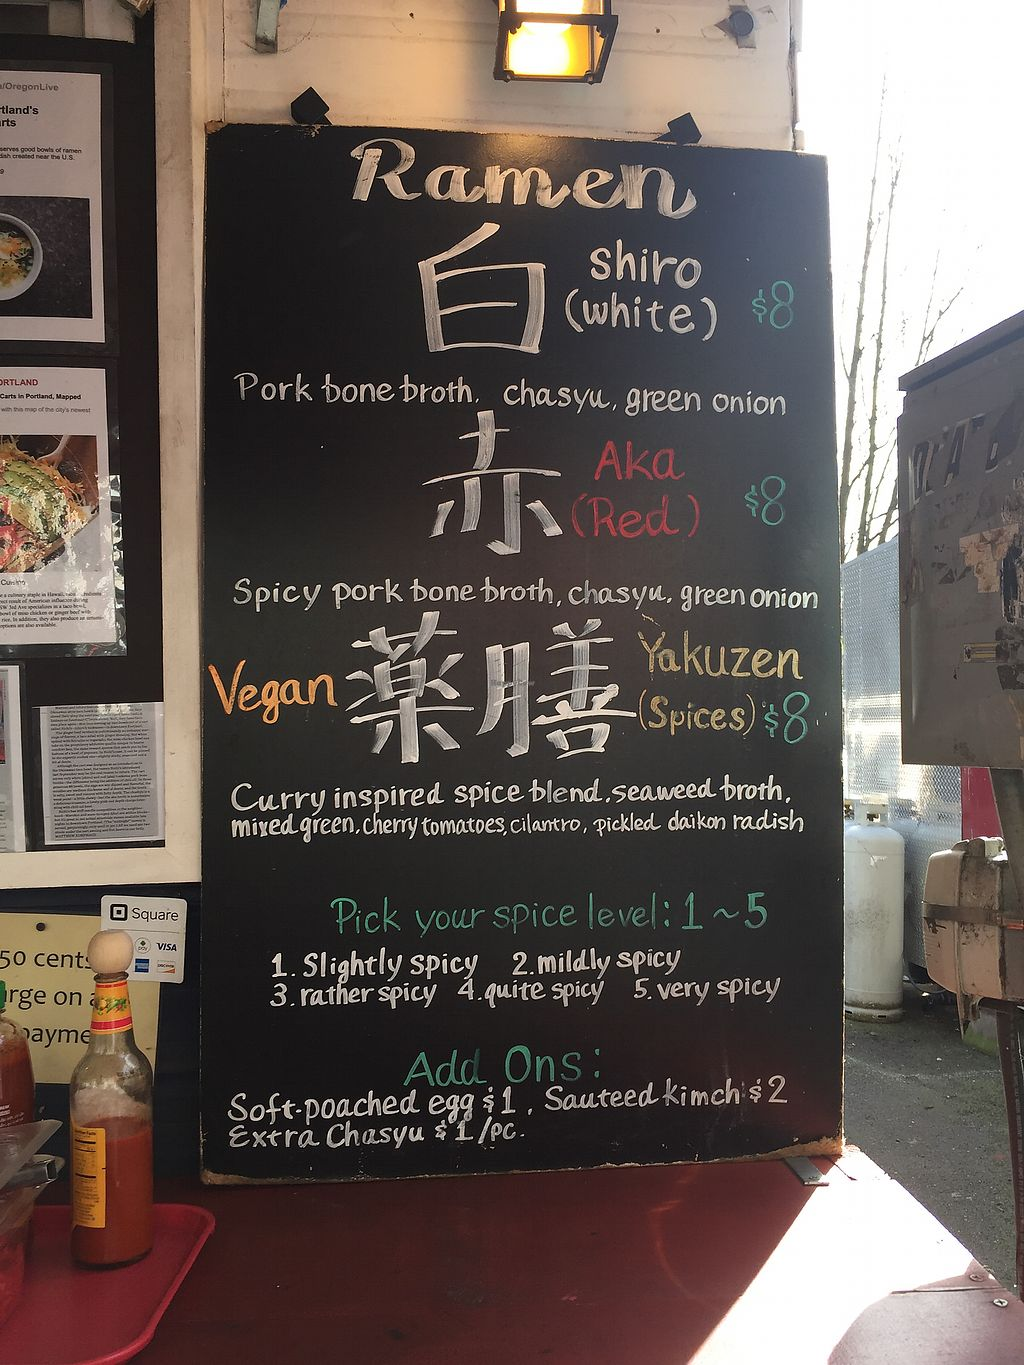 """Photo of Richi's - Food Cart  by <a href=""""/members/profile/schonstal"""">schonstal</a> <br/>Ramen menu  <br/> March 12, 2018  - <a href='/contact/abuse/image/114085/369932'>Report</a>"""